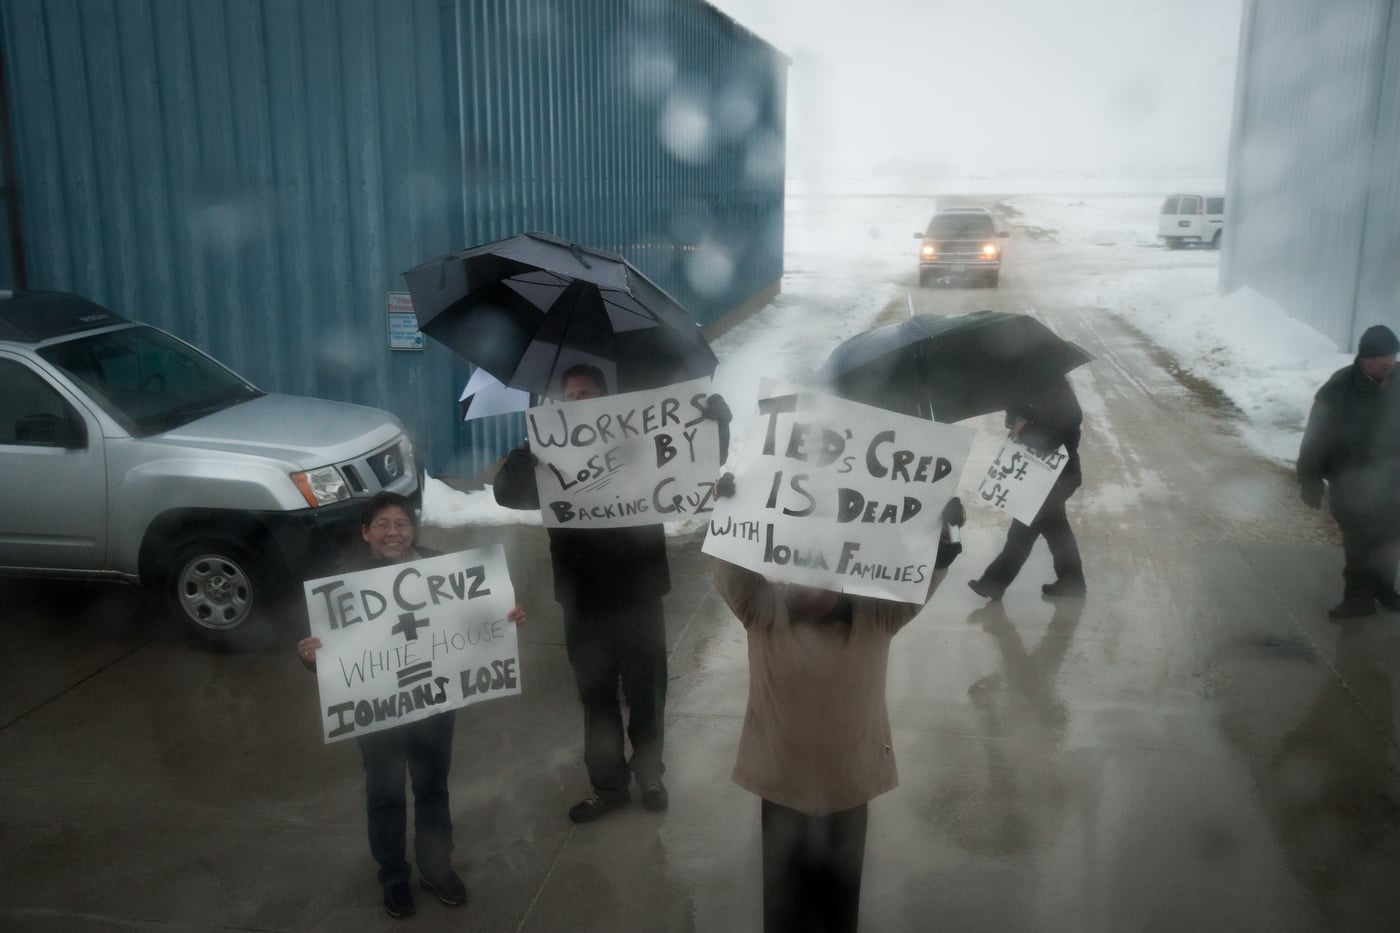 People protest the arrival of U.S. Republican presidential candidate Ted Cruz ahead of his campaign stop at the Webster City Municipal Airport in Webster City, Iowa January 7, 2016. REUTERS/Mark Kauzlarich